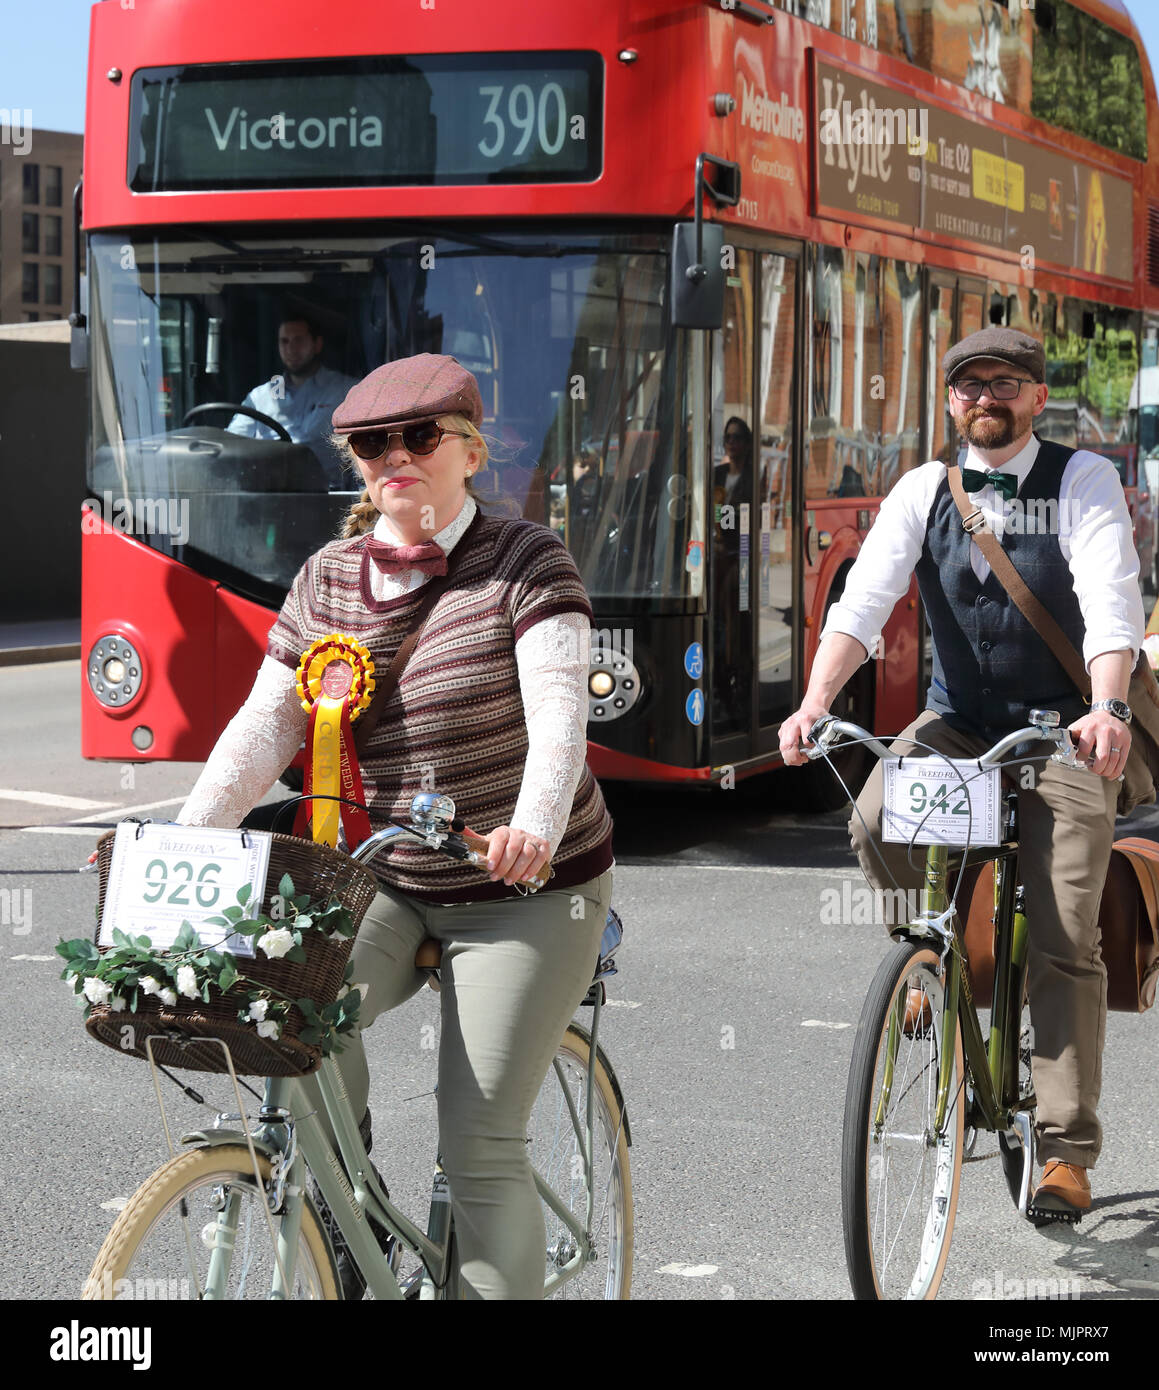 London, UK, 5 May 2018. The eccentric Tweed Cycle Run in London on a warm and sunny May 5th. Participants wore their finest tweeds and brogues with style. Credit: Monica Wells/Alamy Live News - Stock Image